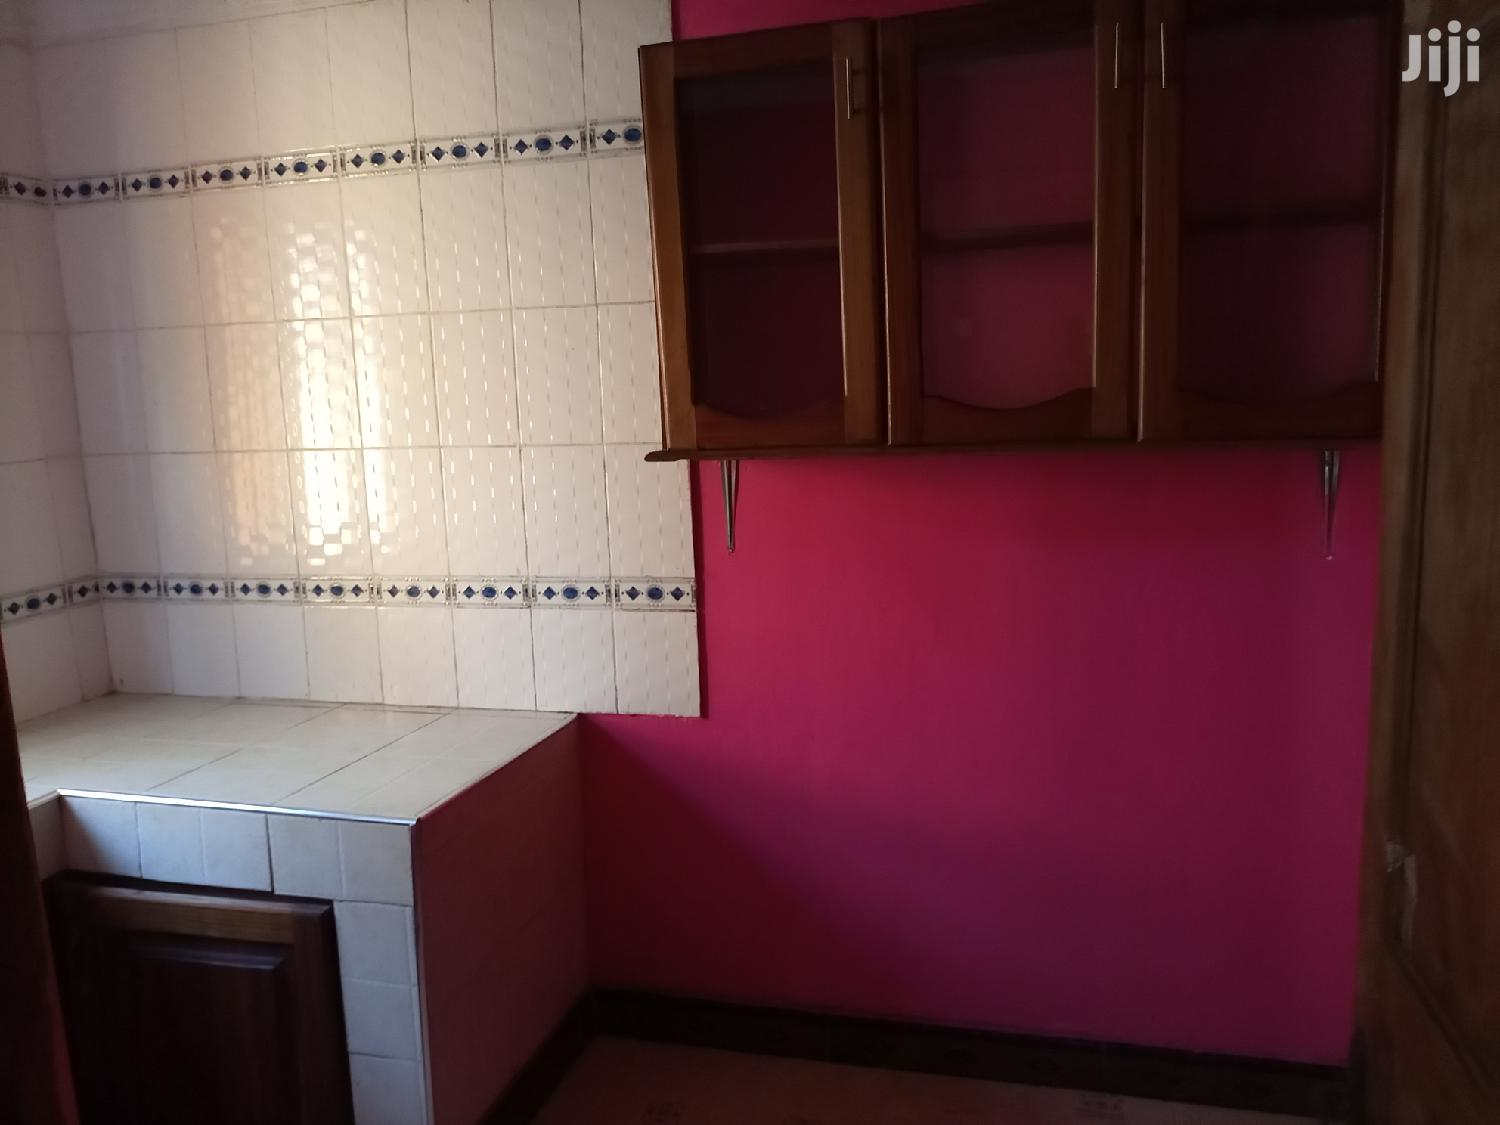 2bedrooms,Sitting Room,Kitchen, Master And Public Toilet | Houses & Apartments For Rent for sale in Kinondoni, Dar es Salaam, Tanzania